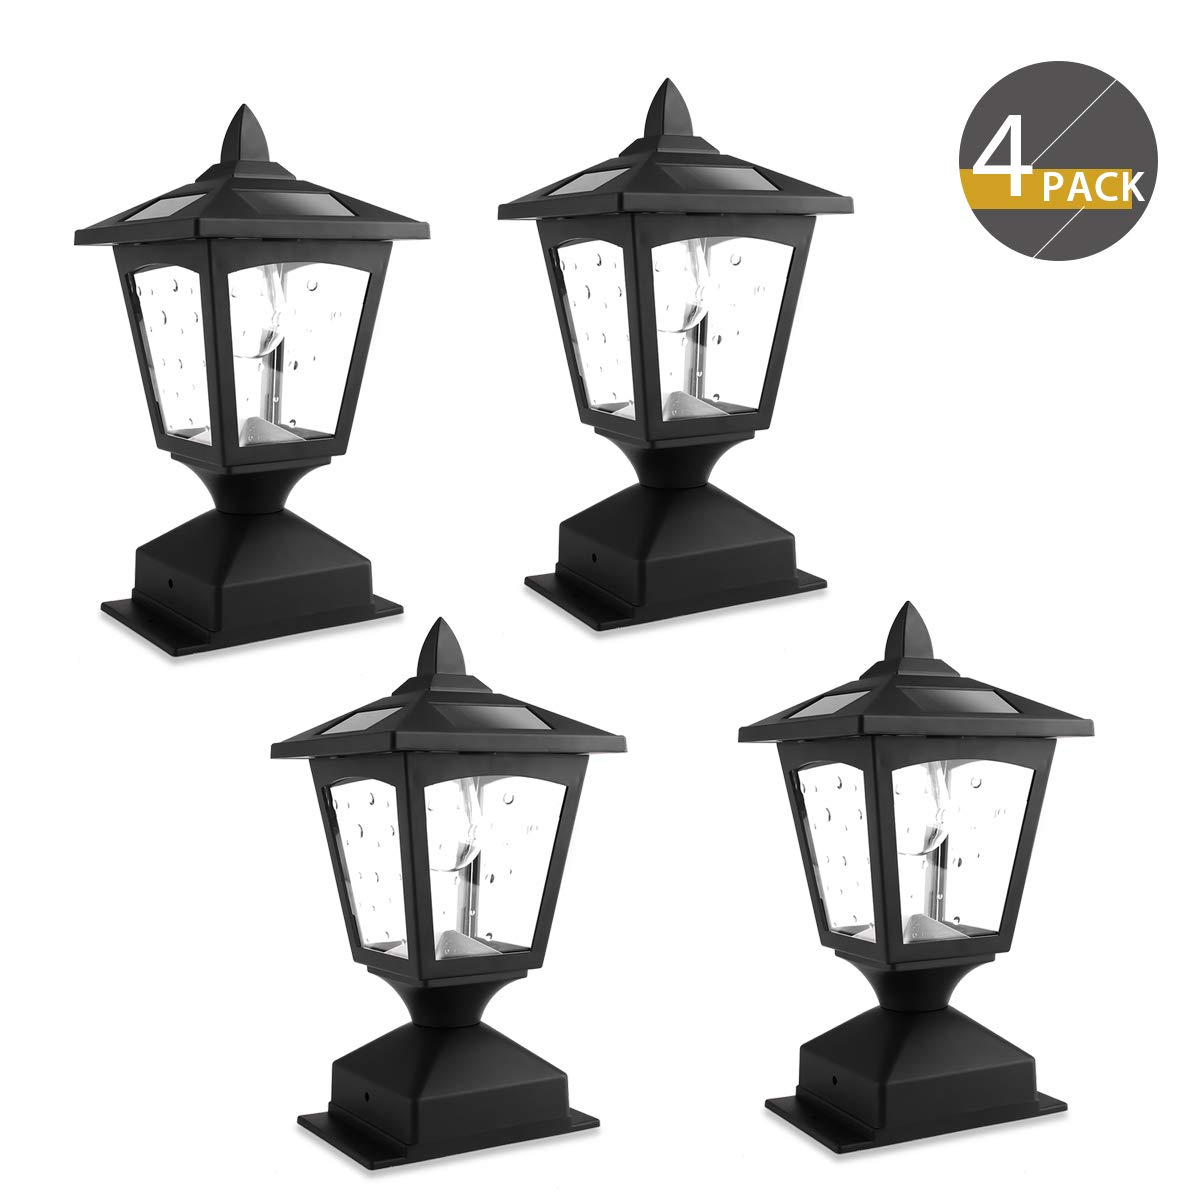 4 x 4 Solar Post Lights Outdoor, Solar Lamp Post Lights for Wood Fence, Deck, Posts Pathway, Pack of 4 by Greluna